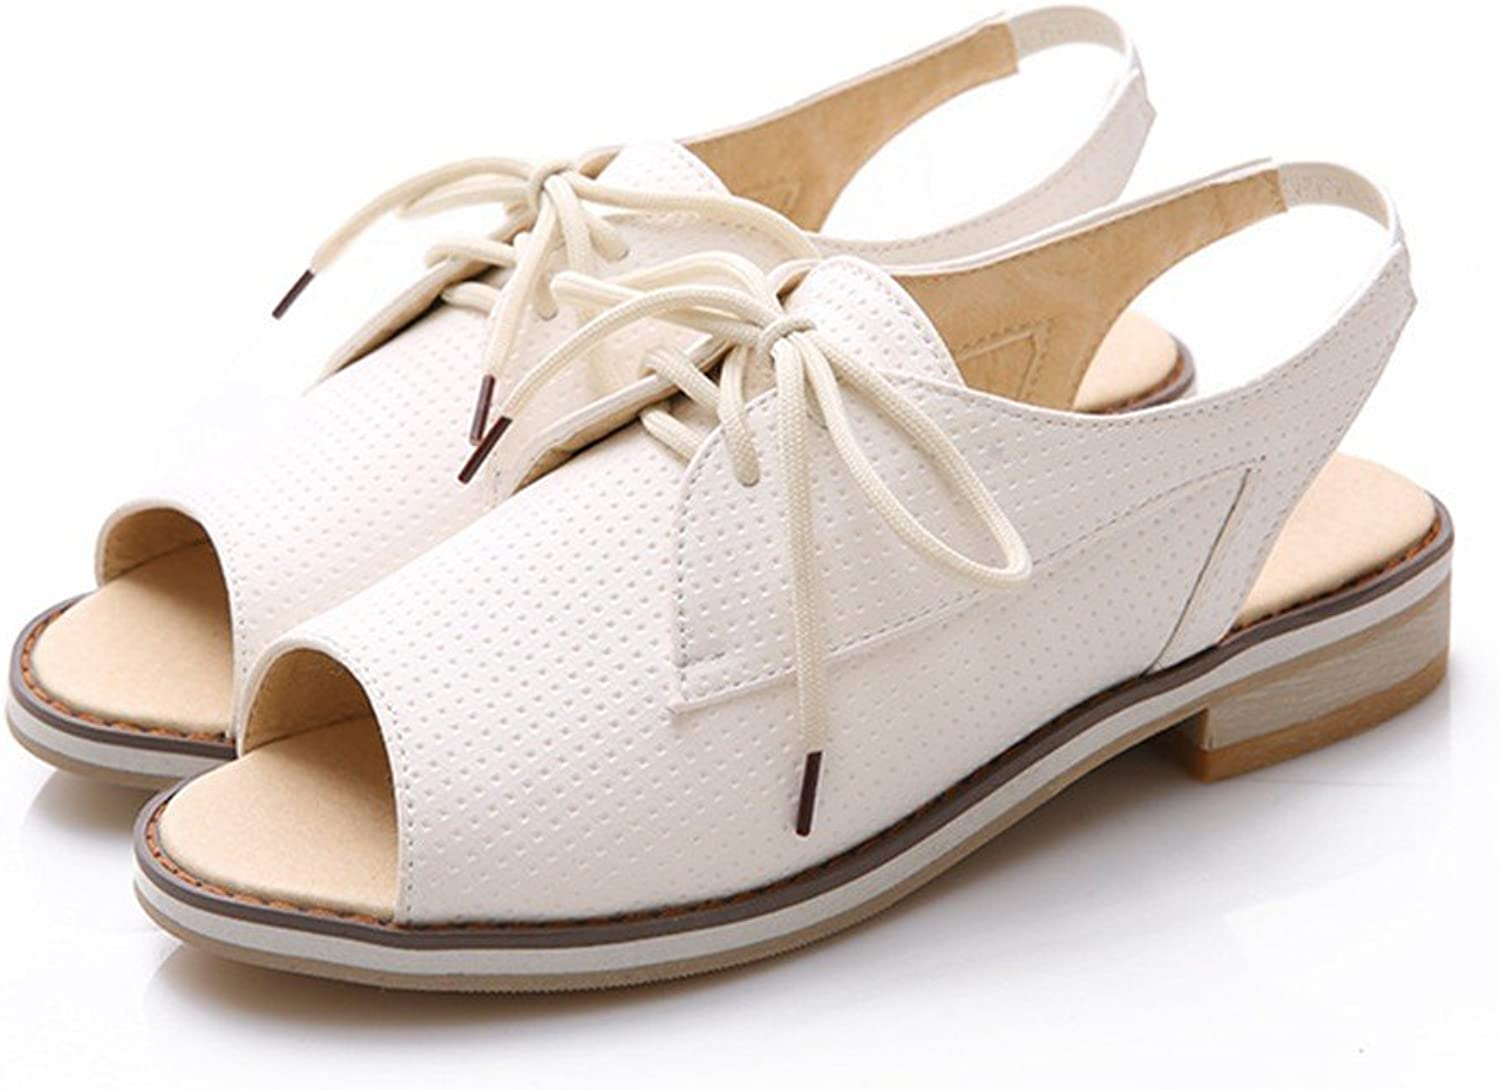 YU&Xin-The Korean Version of Fashion Woman shoes Fish Mouth Flat Stylish Sandals Students.